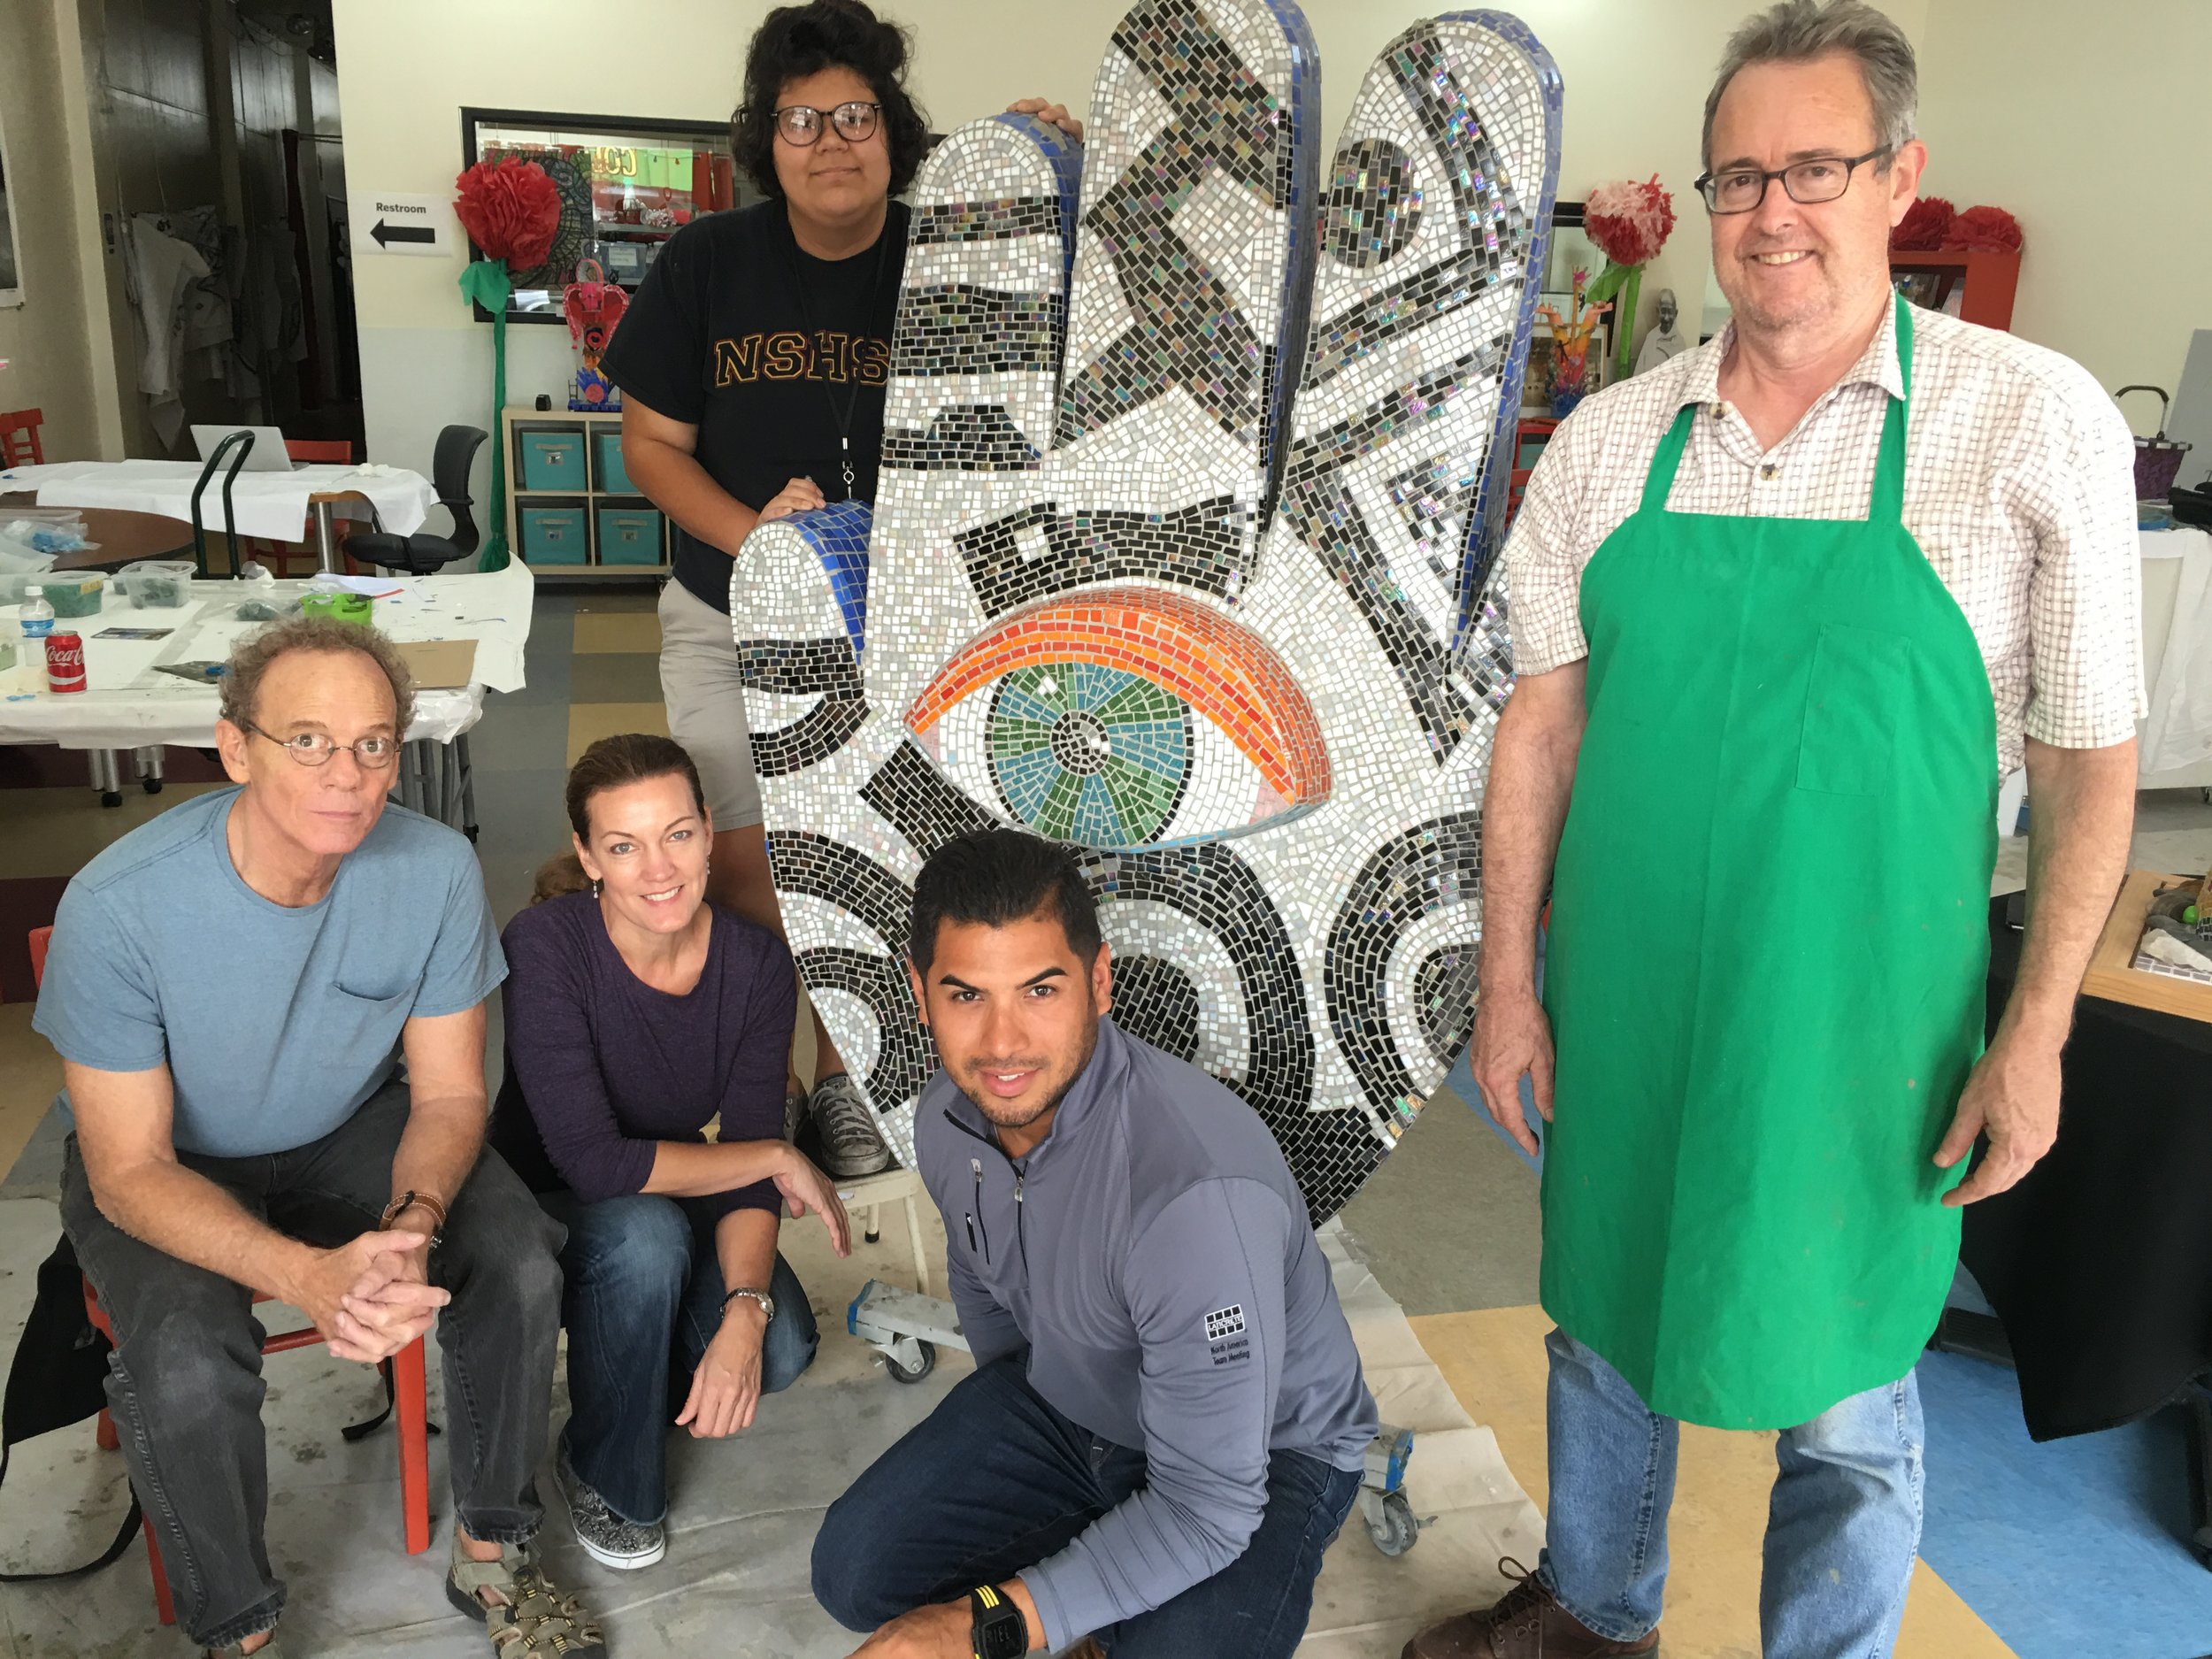 Joe Stokes, lead art instructor, Julie Richey, lead mosaic artist, Maria Patino, student intern, Daniel Diaz, Laticrete rep, and Kelly Nash, 29 Pieces staff artist pose with the completed hand.